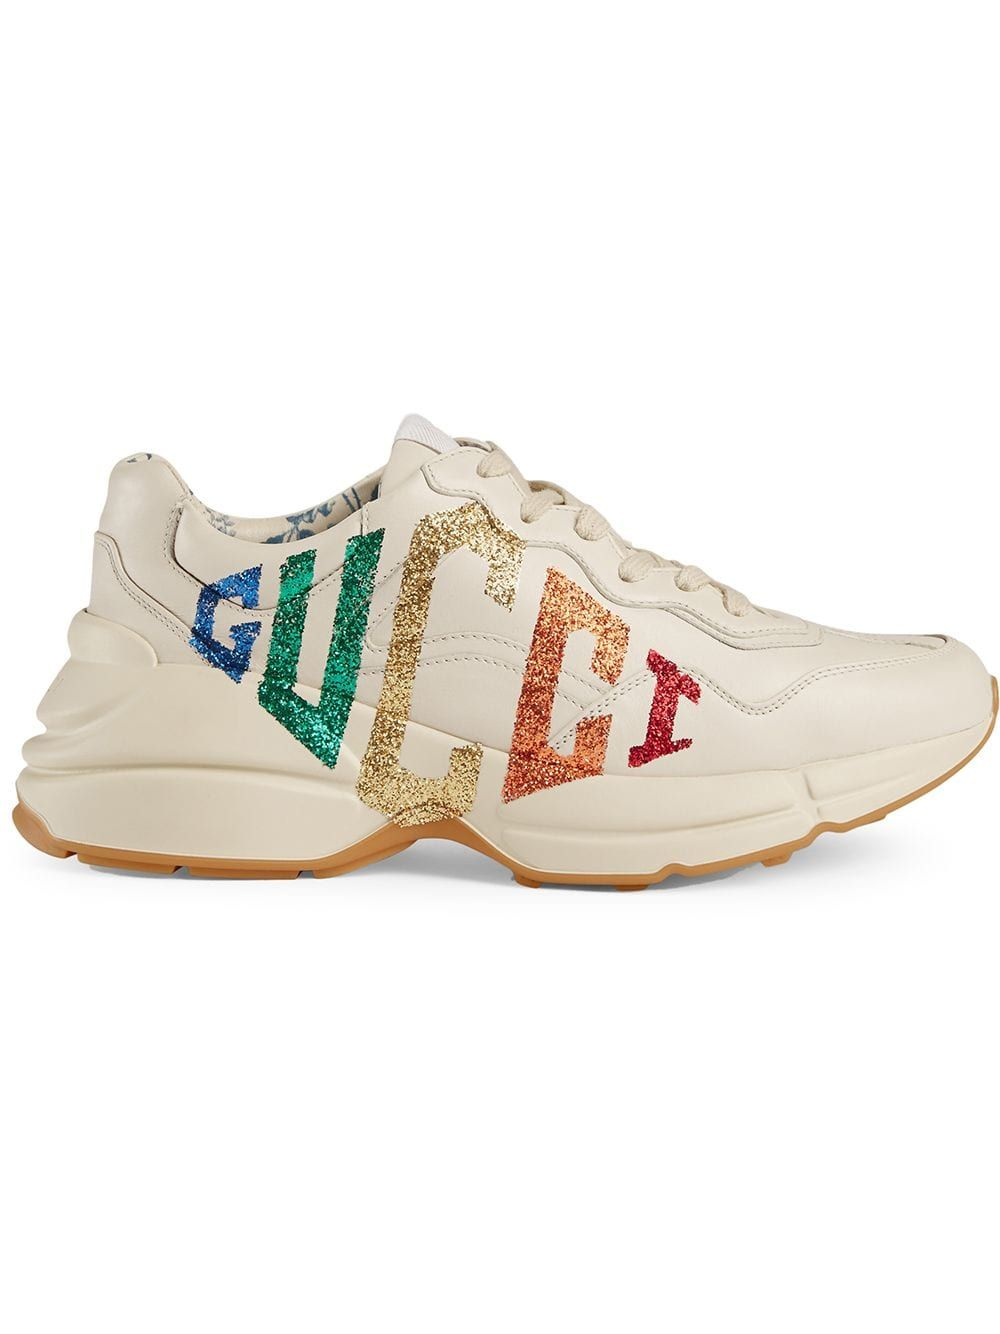 14b623767 Buy online Gucci Rhyton glitter Gucci leather sneaker for $1,100. Purchase  today with fast global delivery, new arrivals, new season